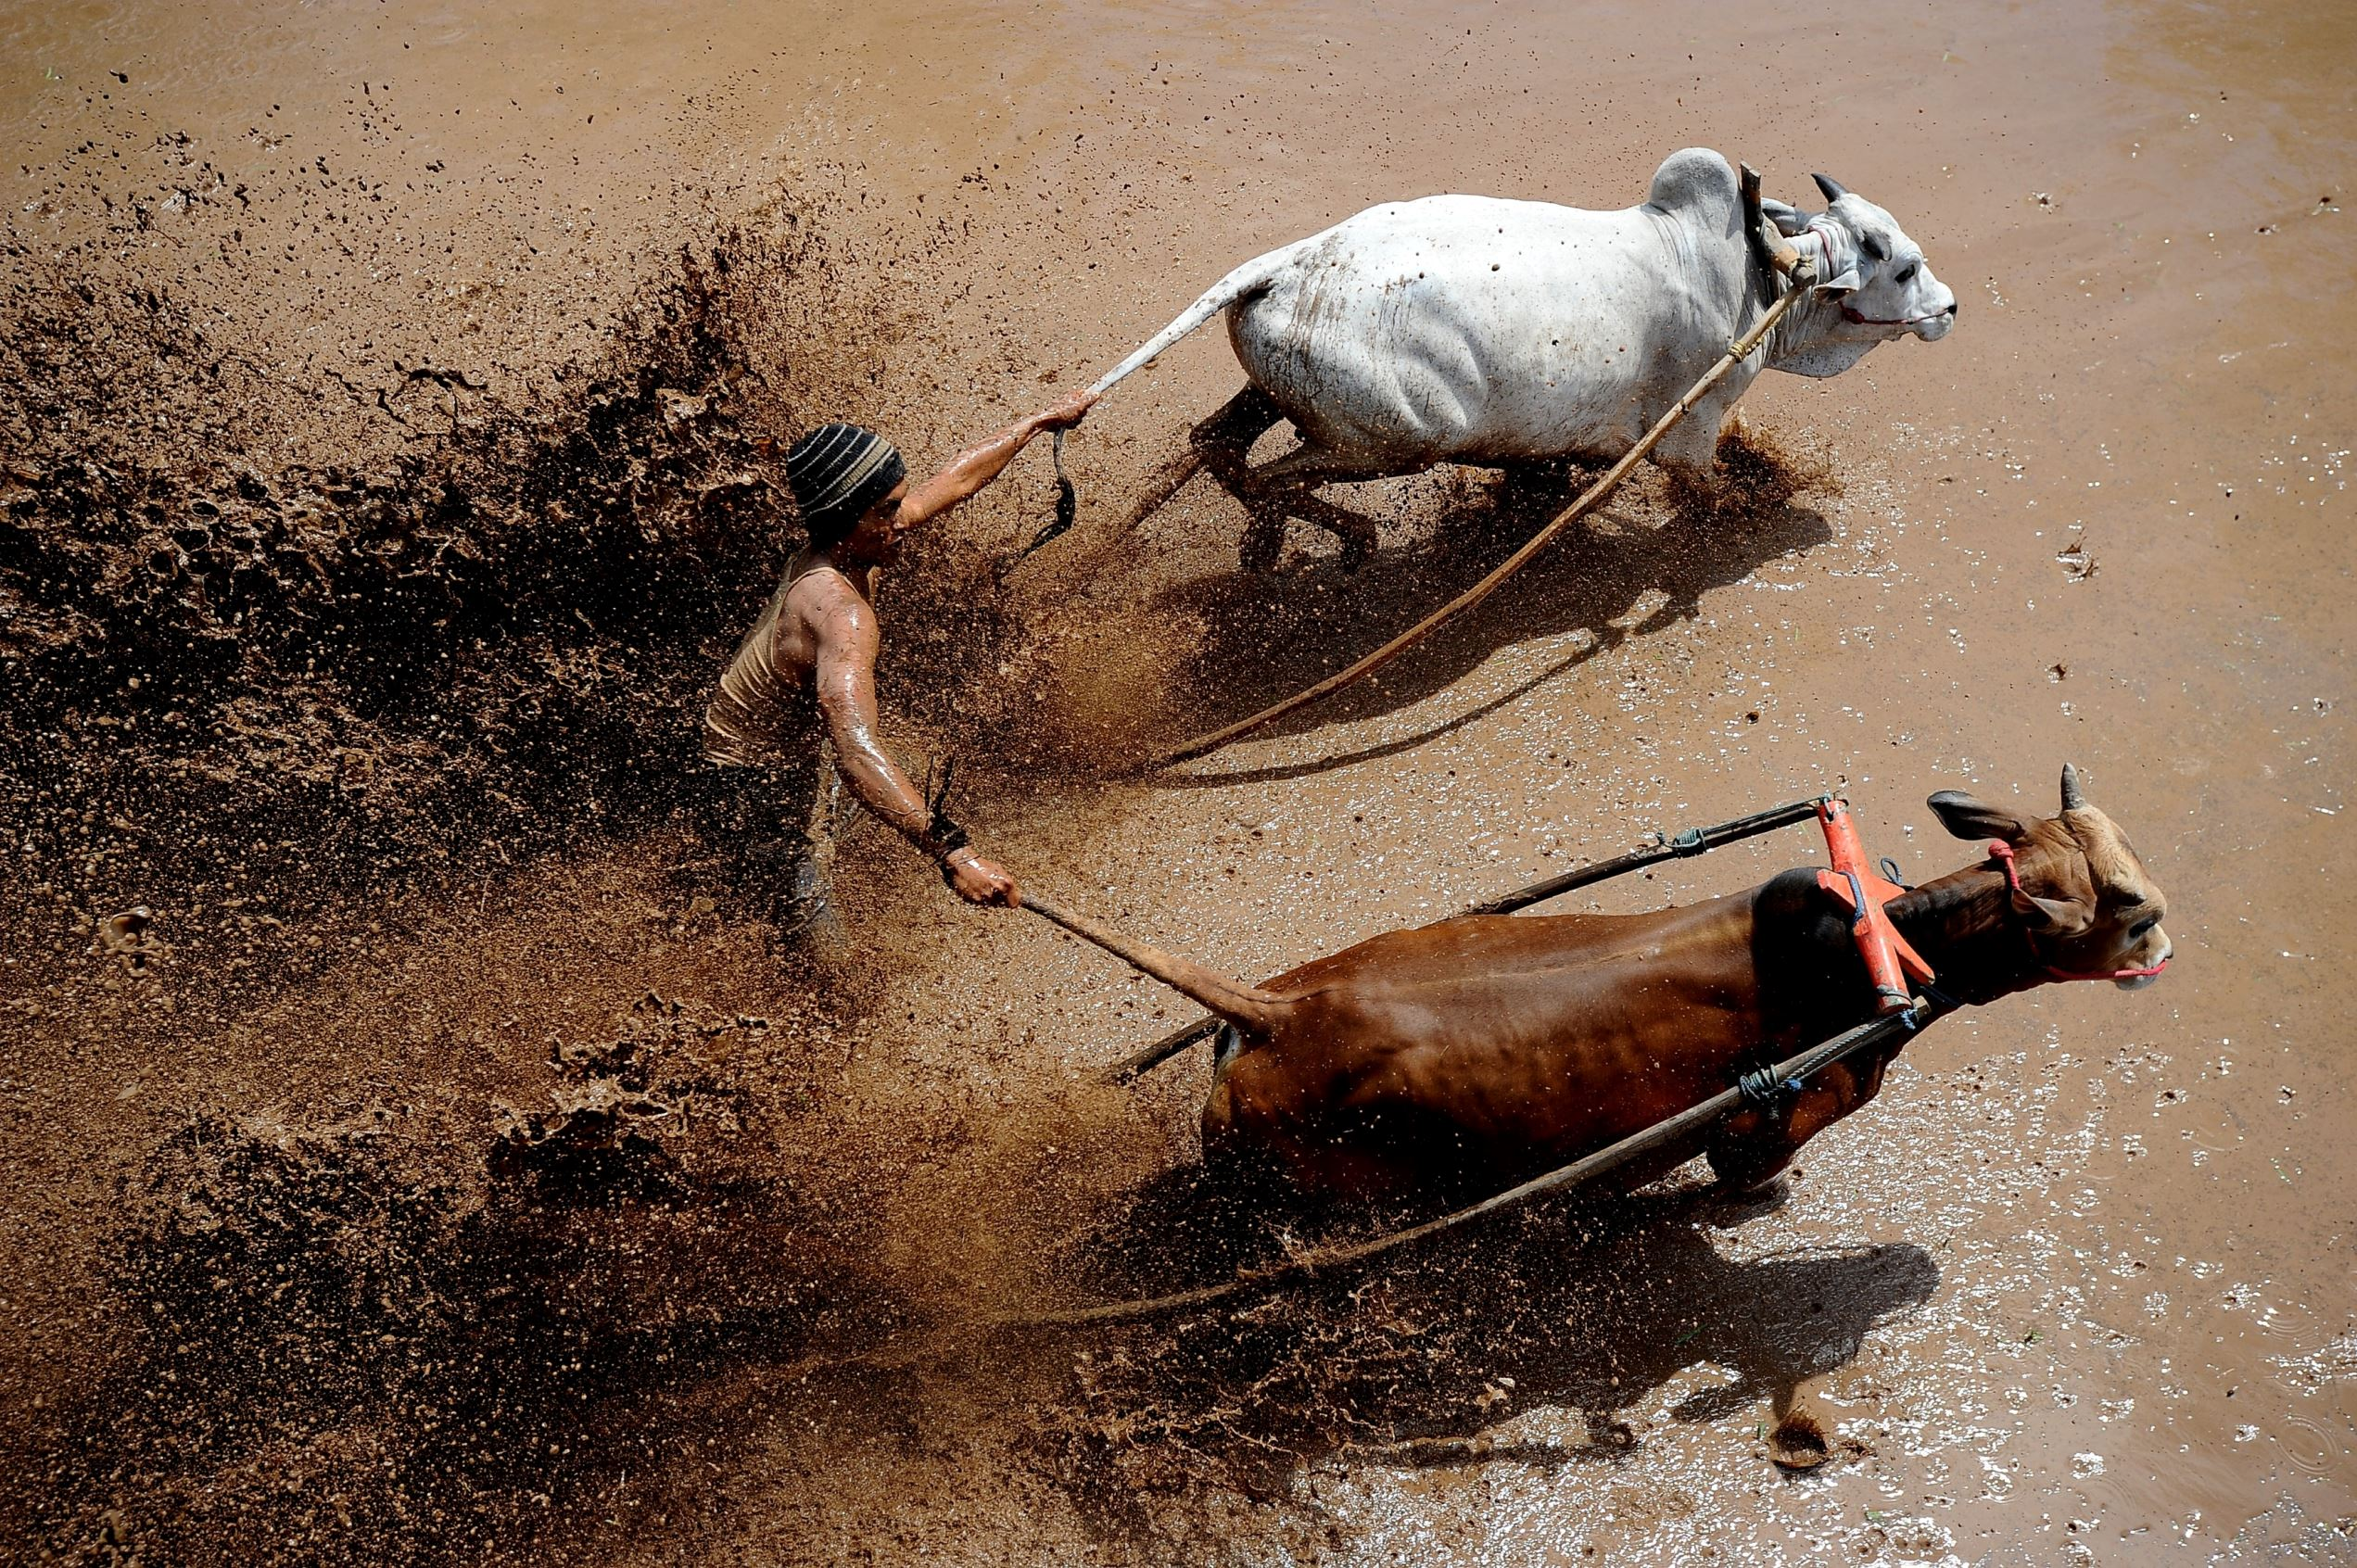 Слайд 7 из 67: A jockey spurs the cows during Pacu Jawi at Tabek village, Pariangan district on August 14, 2016 in Tanah Datar, Indonesia. Pacu Jawi (traditional cow racing) is held annually in muddy rice fields to celebrate the end of the harvest season by the Sumatrans people in Tanah Datar regency. Jockeys grab the tails of the bulls and skate across the mud barefoot balancing on a wooden plank to show the strength of their bulls who are later auctioned to buyers. This event has been around for hundreds of years and was originally an activity undertaken by the farmers after harvest season for leisure as well as a means of entertainment for local people and thanksgiving ritual before start planting season. Nowadays, this Pacu Jawi attracts both local and international tourists to come.